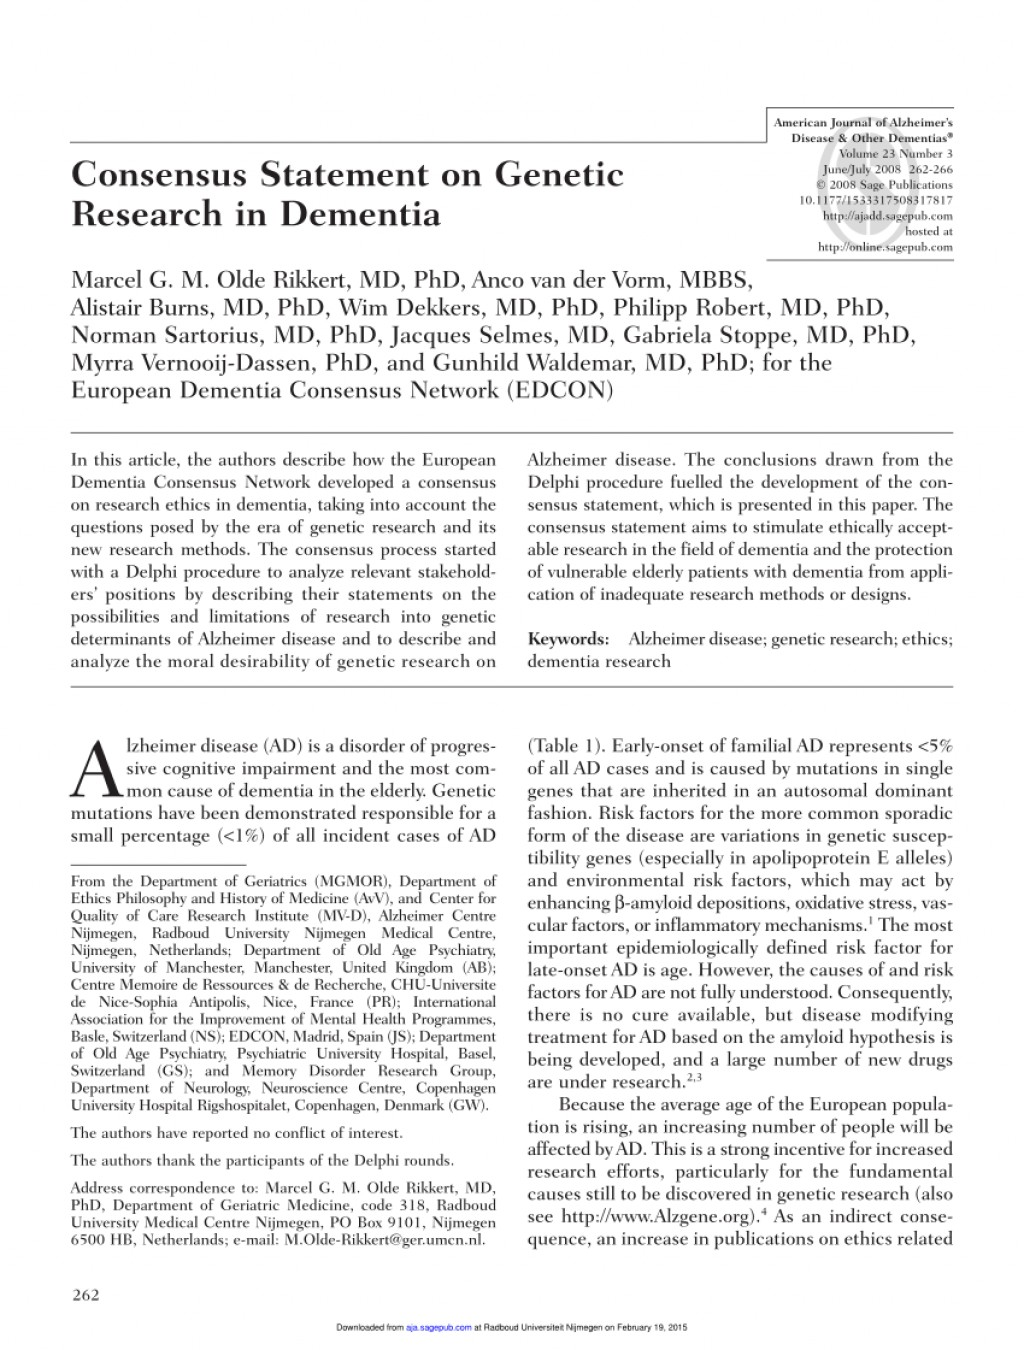 007 Largepreview Alzheimers Disease Research Paper Incredible Conclusion Alzheimer's Large